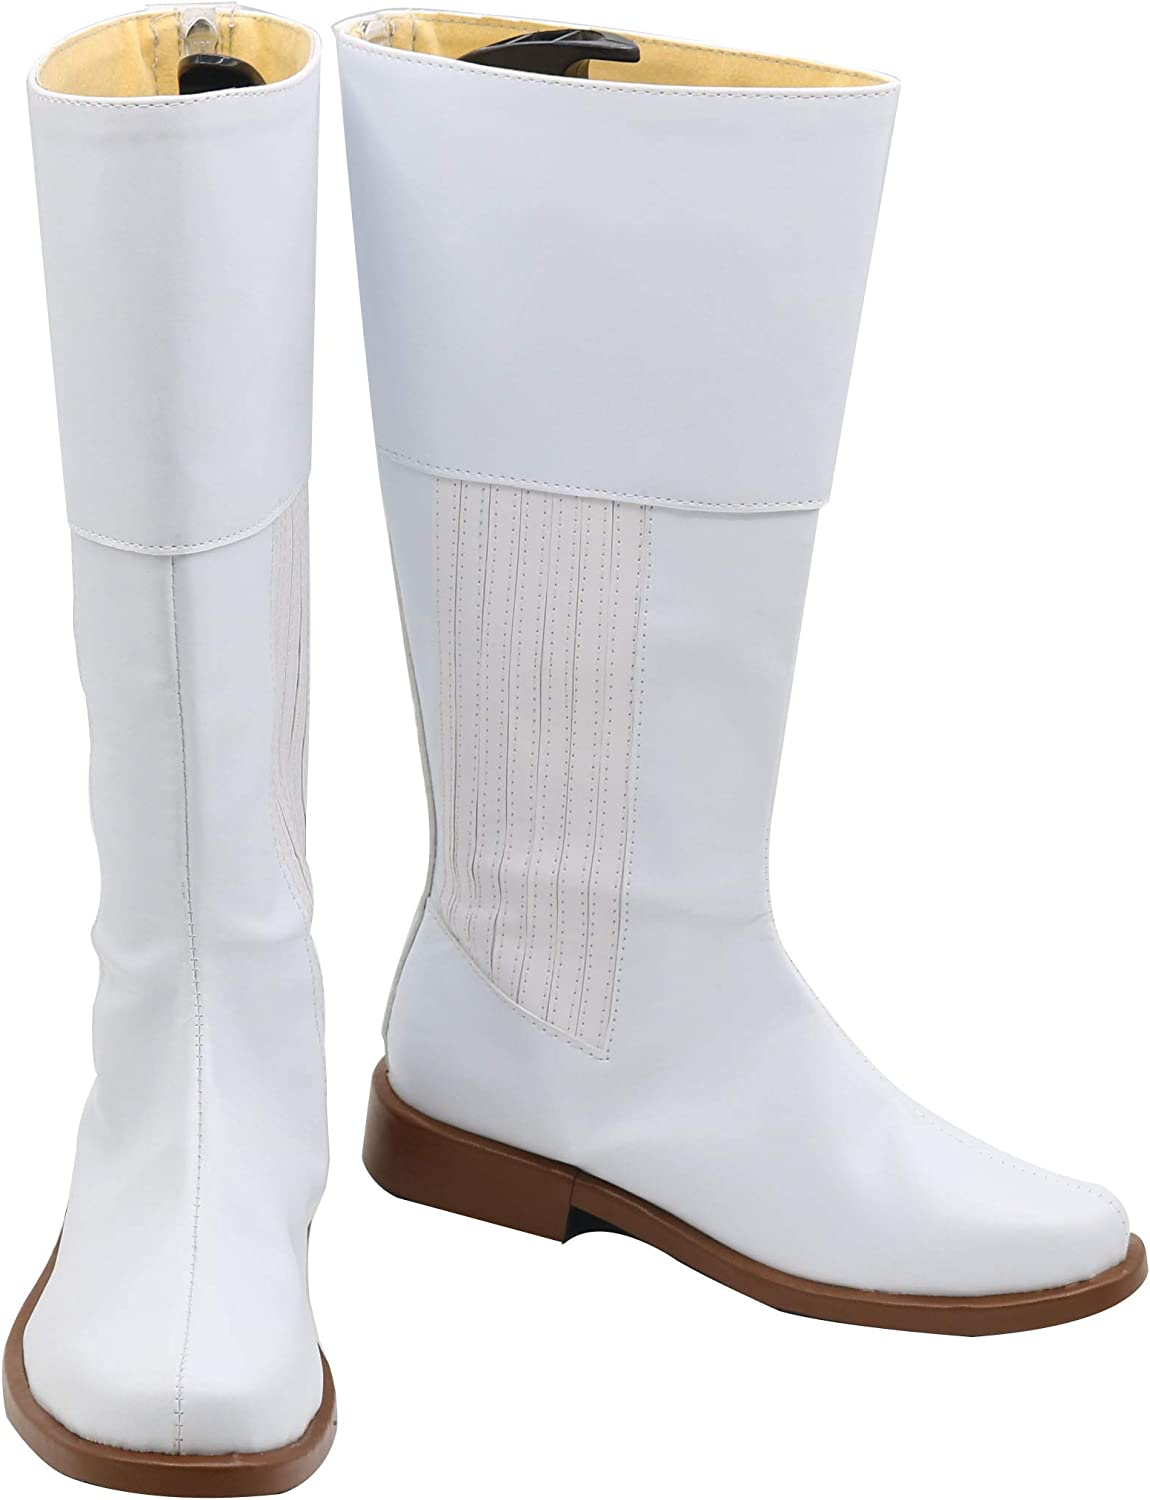 with defects WOMENS WHITE COSTUME BOOTS SIZE ADULT 6